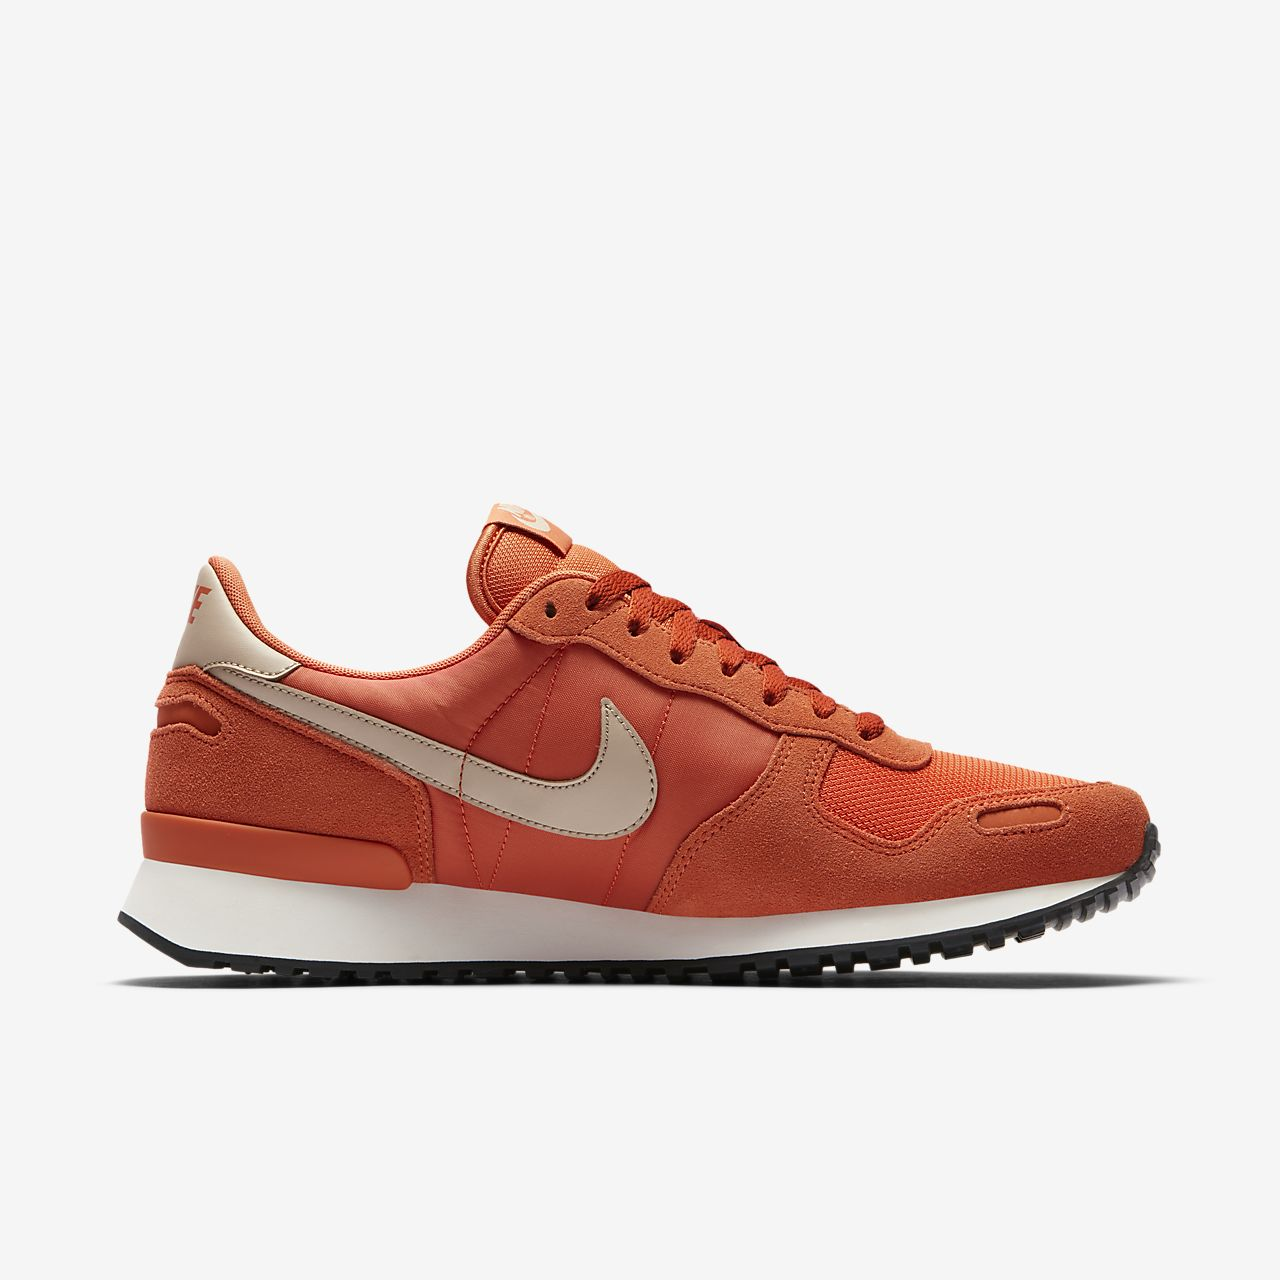 Vortex Orange Nike Homme Chaussures R5qzquy Air 7YpwUP